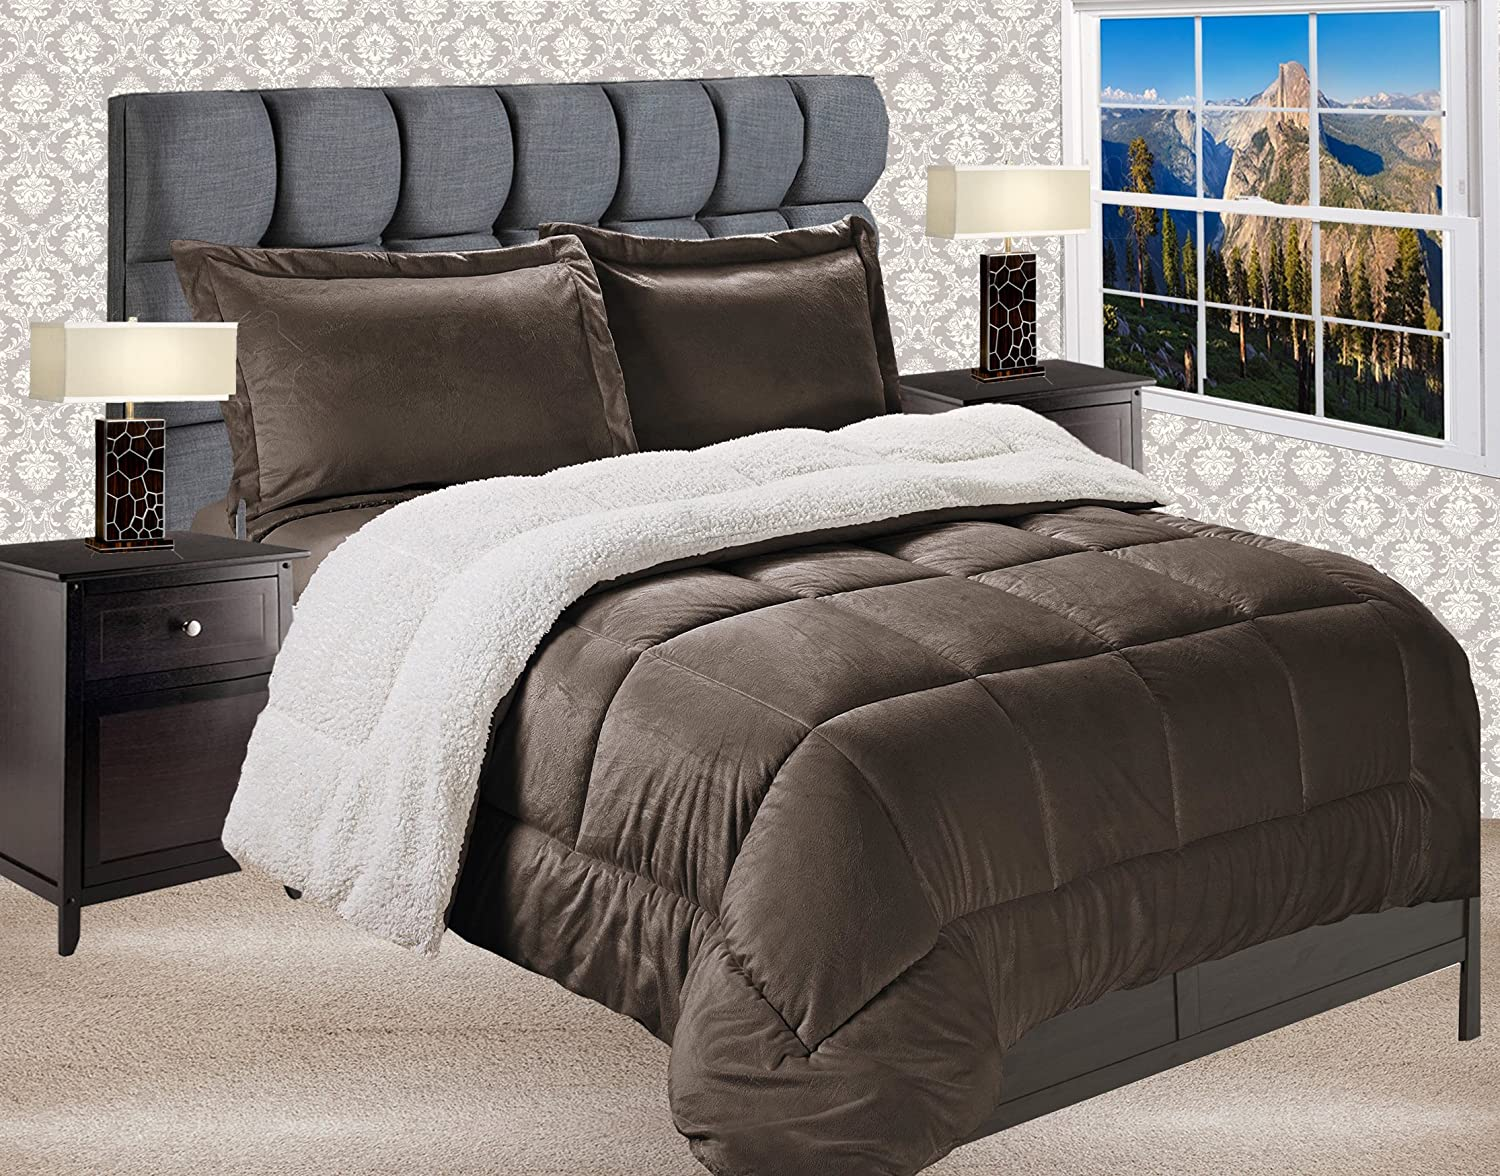 Elegant Comfort Premium Quality Heavy Weight Micromink Sherpa-Backing Reversible Down Alternative Micro-Suede 3-Piece Comforter Set, King, Chocolate Brown